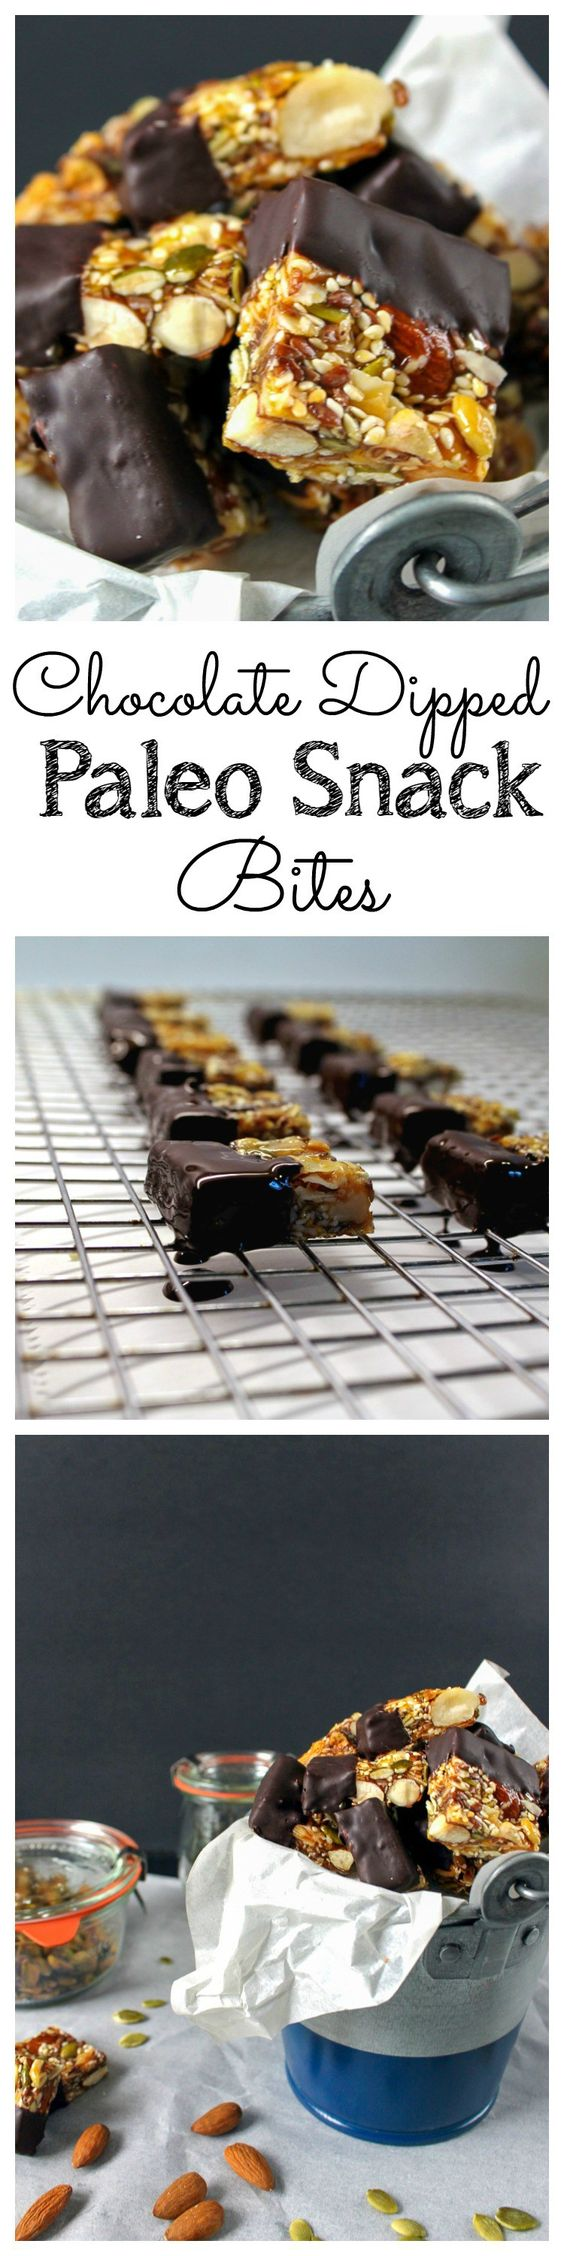 These bite-sized snack bars are filled with nuts and seeds and held together with honey. These are great for those on Paleo or clean eating diets! Gluten free too! Chocolate Dipped Paleo Snack Bars Recipe | Take Two Tapas